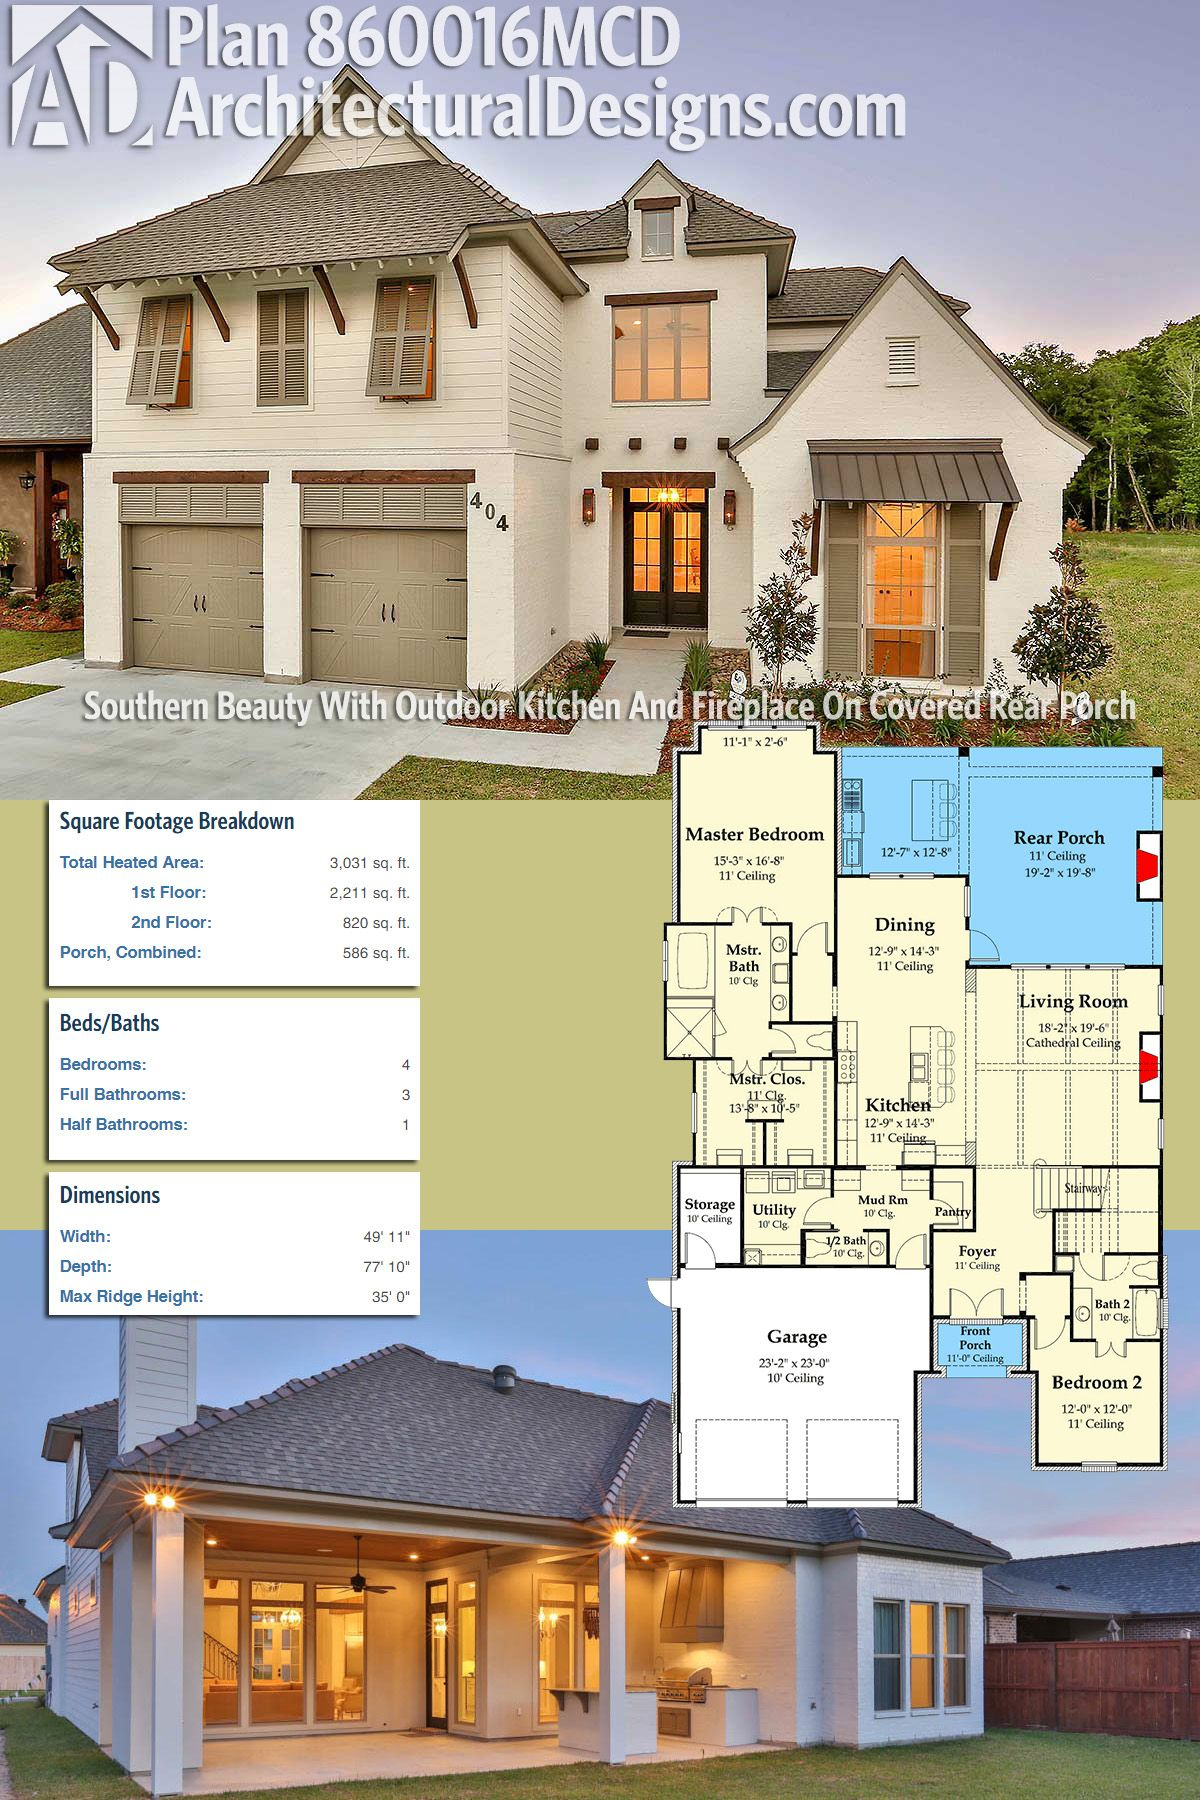 Architectural Designs House Plan 860016MCD gives you